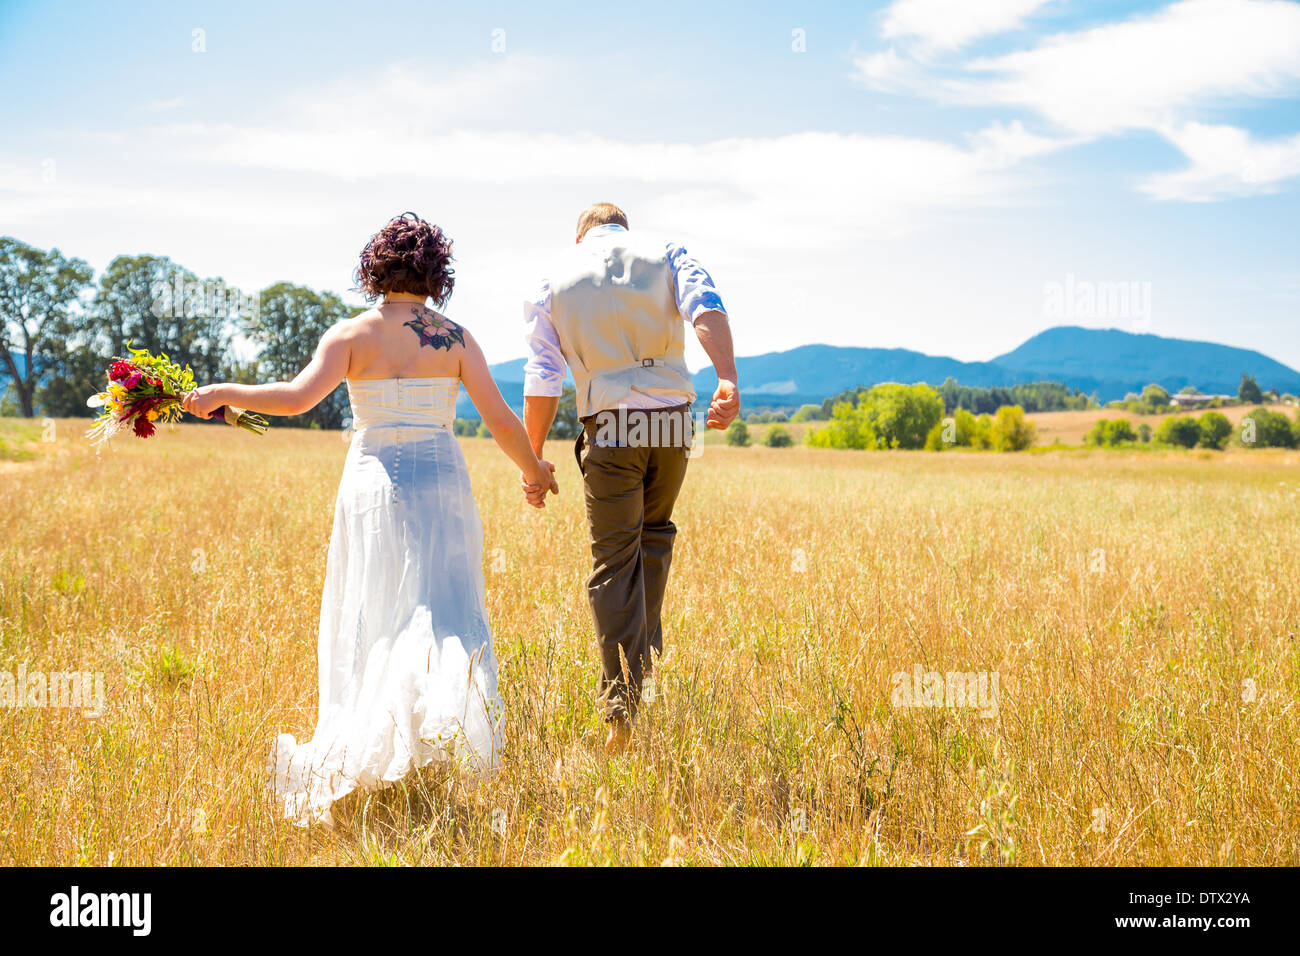 Bride and groom walking together on their wedding day through a field in Oregon. - Stock Image